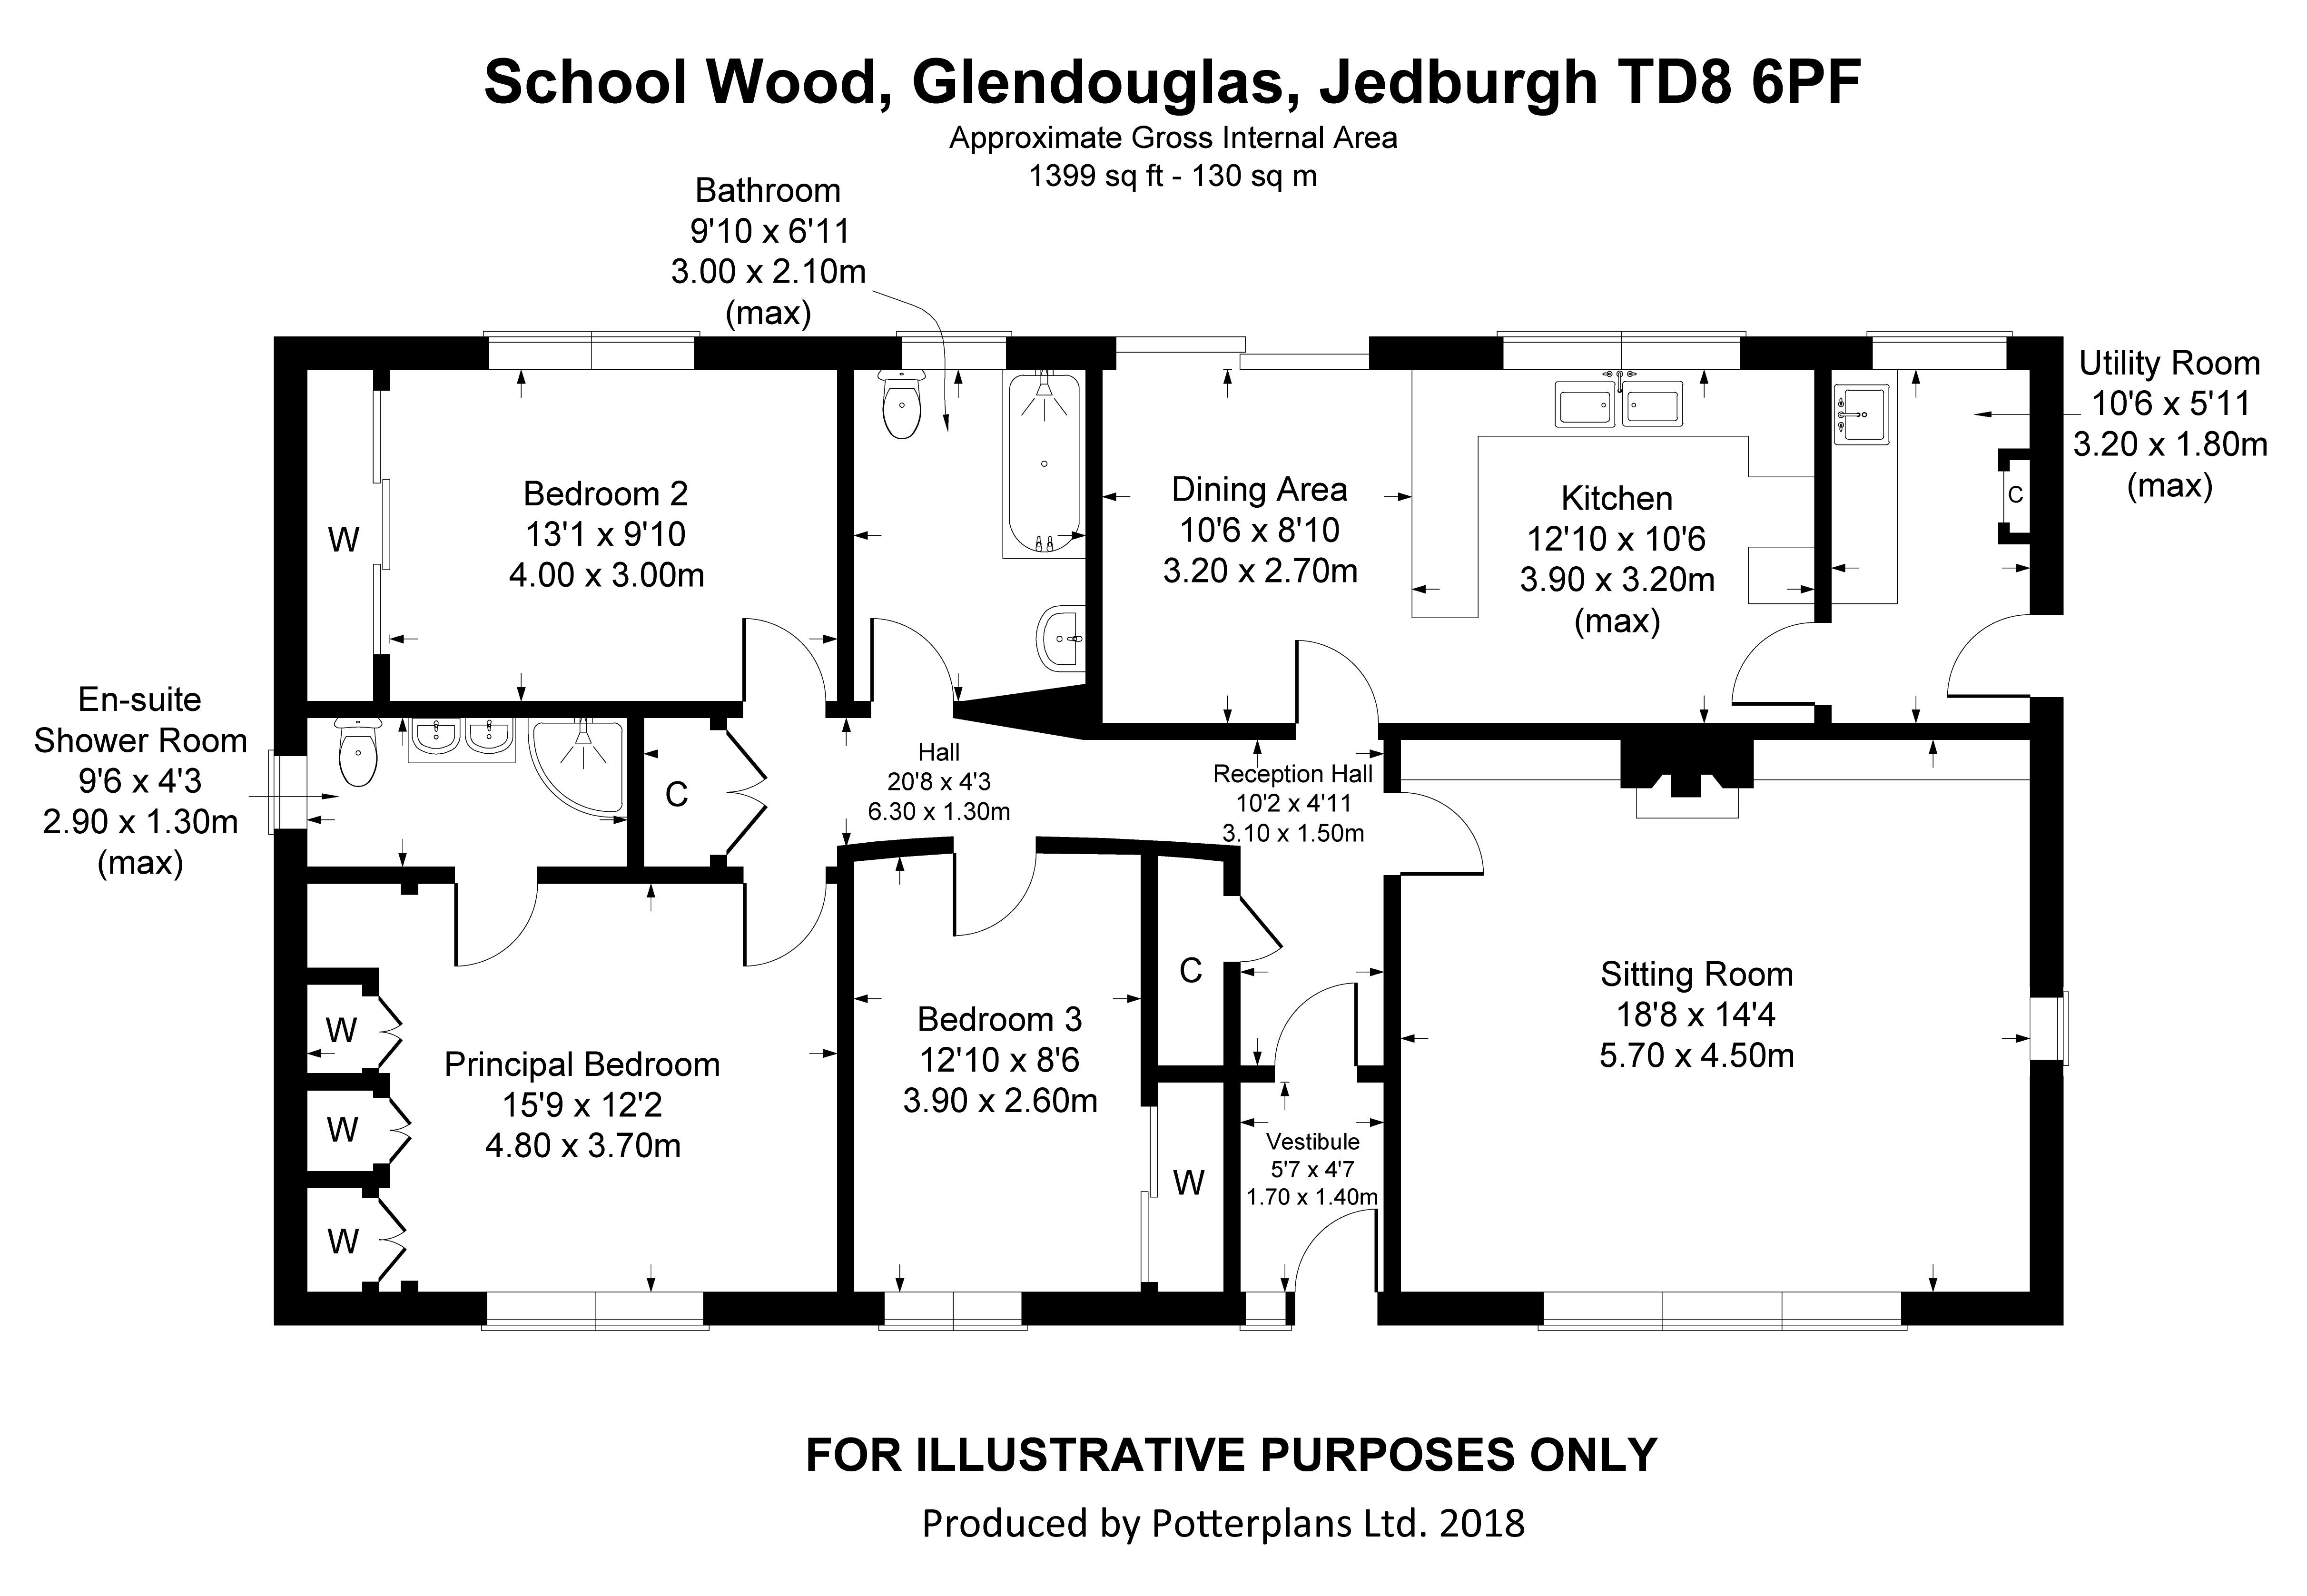 School Wood Ground Floor